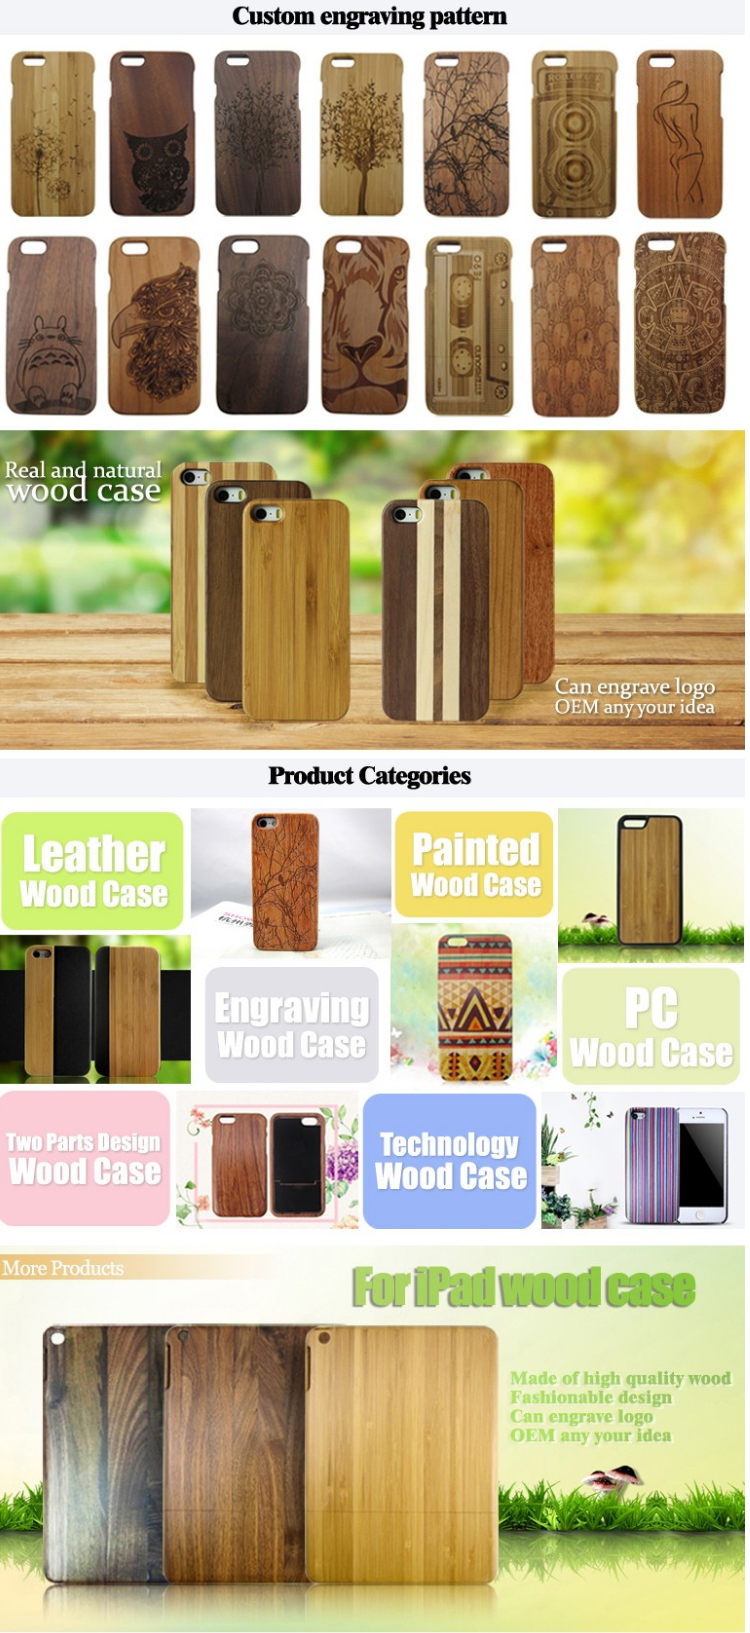 High-end design customized mobile phone cork wood phone cover cork phone casefor iphone